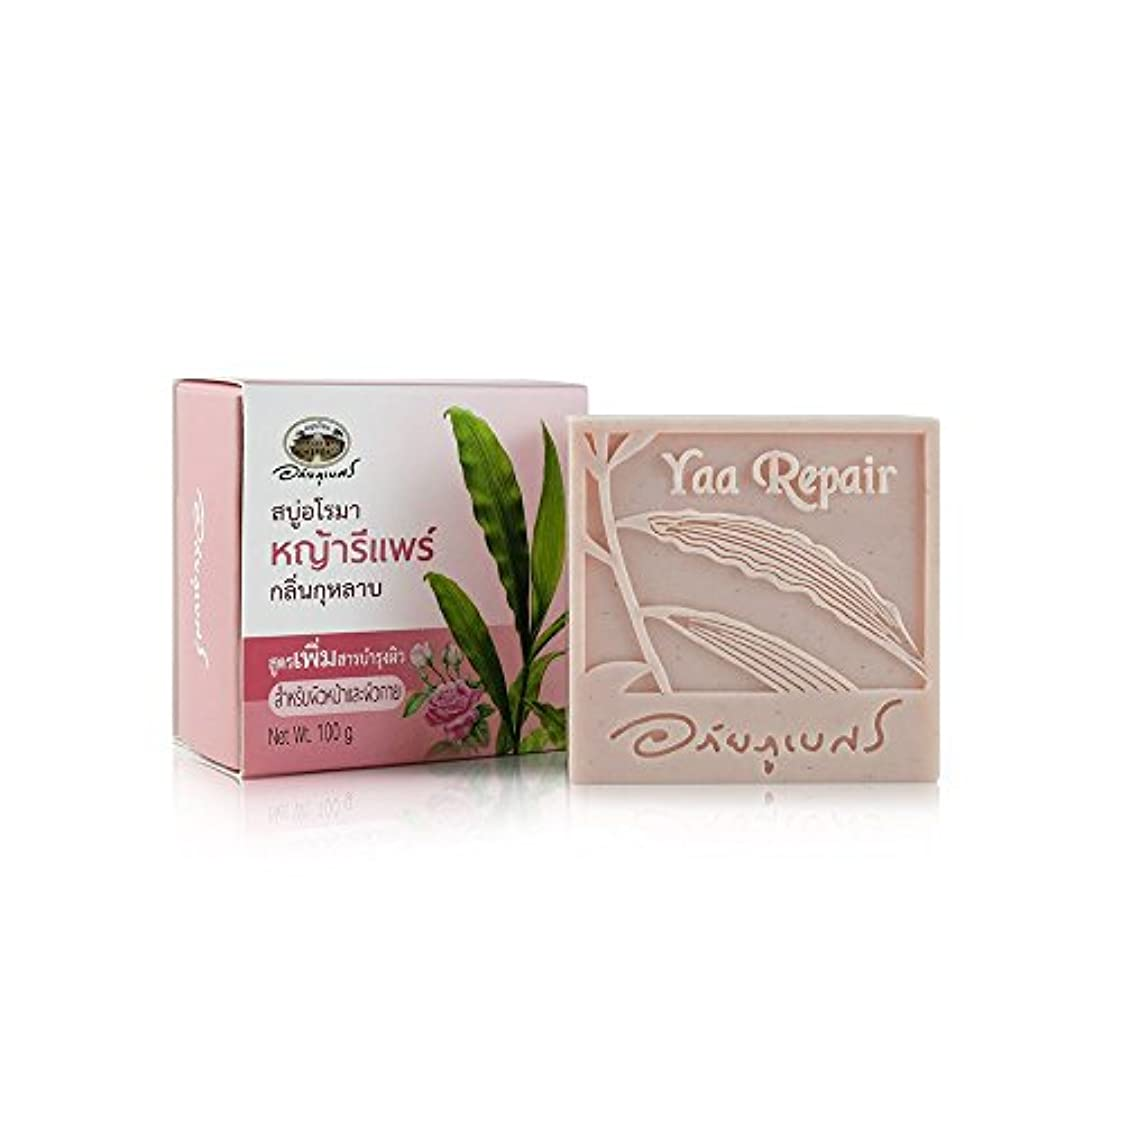 死すべき中悪いAbhaibhubejhr Thai Aromatherapy With Rose Skin Care Formula Herbal Body Face Cleaning Soap 100g. Abhaibhubejhr...